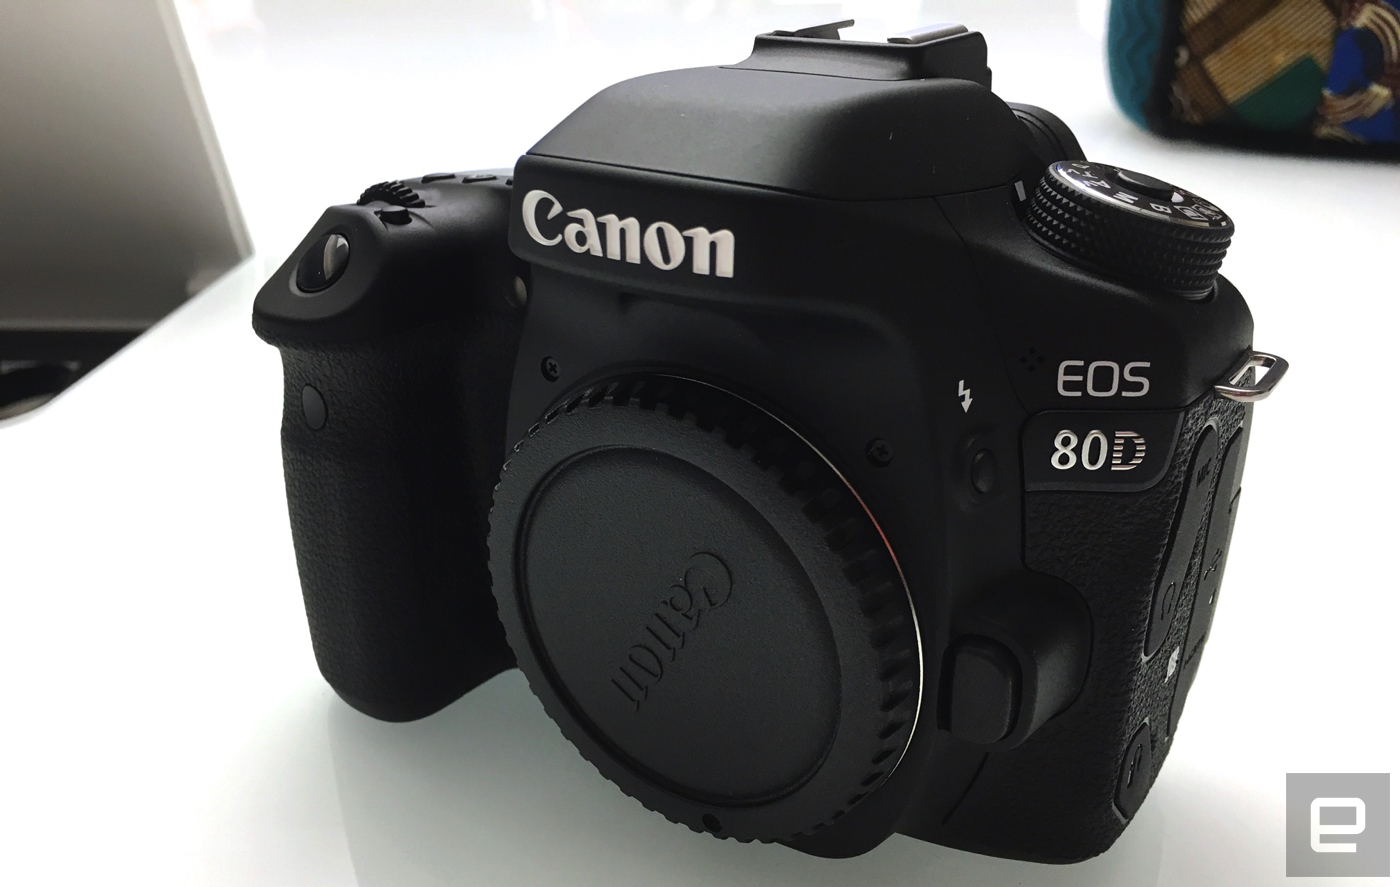 Beautiful Crowd Canon 80d Body Only Buy Canon 80d Body Sale Eos Dslr Is Designed dpreview Canon 80d Body